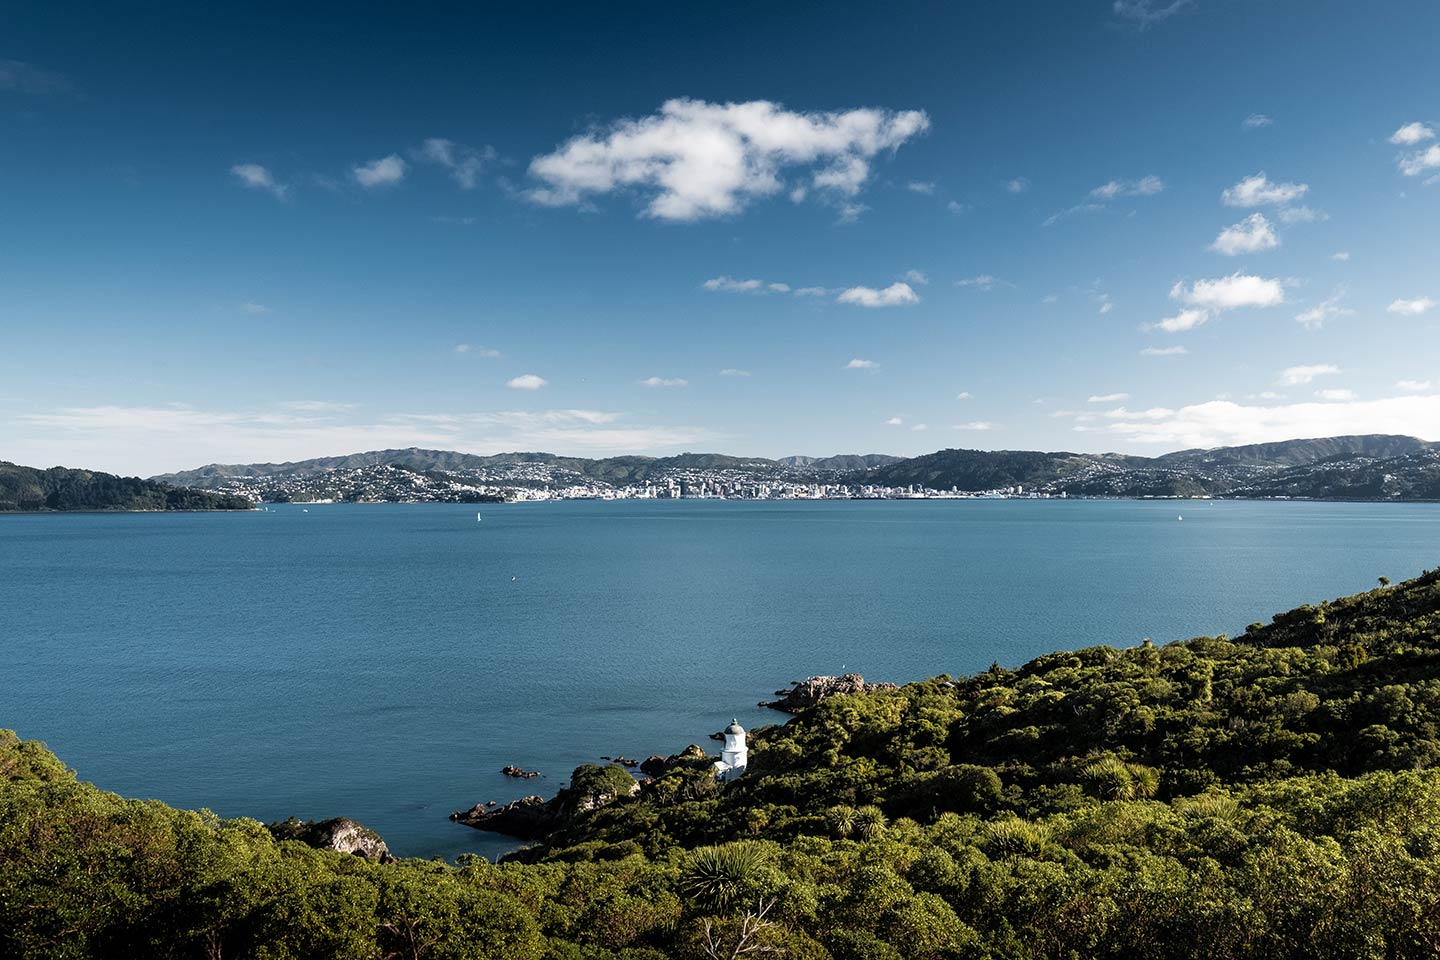 From the top of Matiu/Somes Island a lighthouse is visible at the bottom of the island. In the distance you can see the city of Wellington.